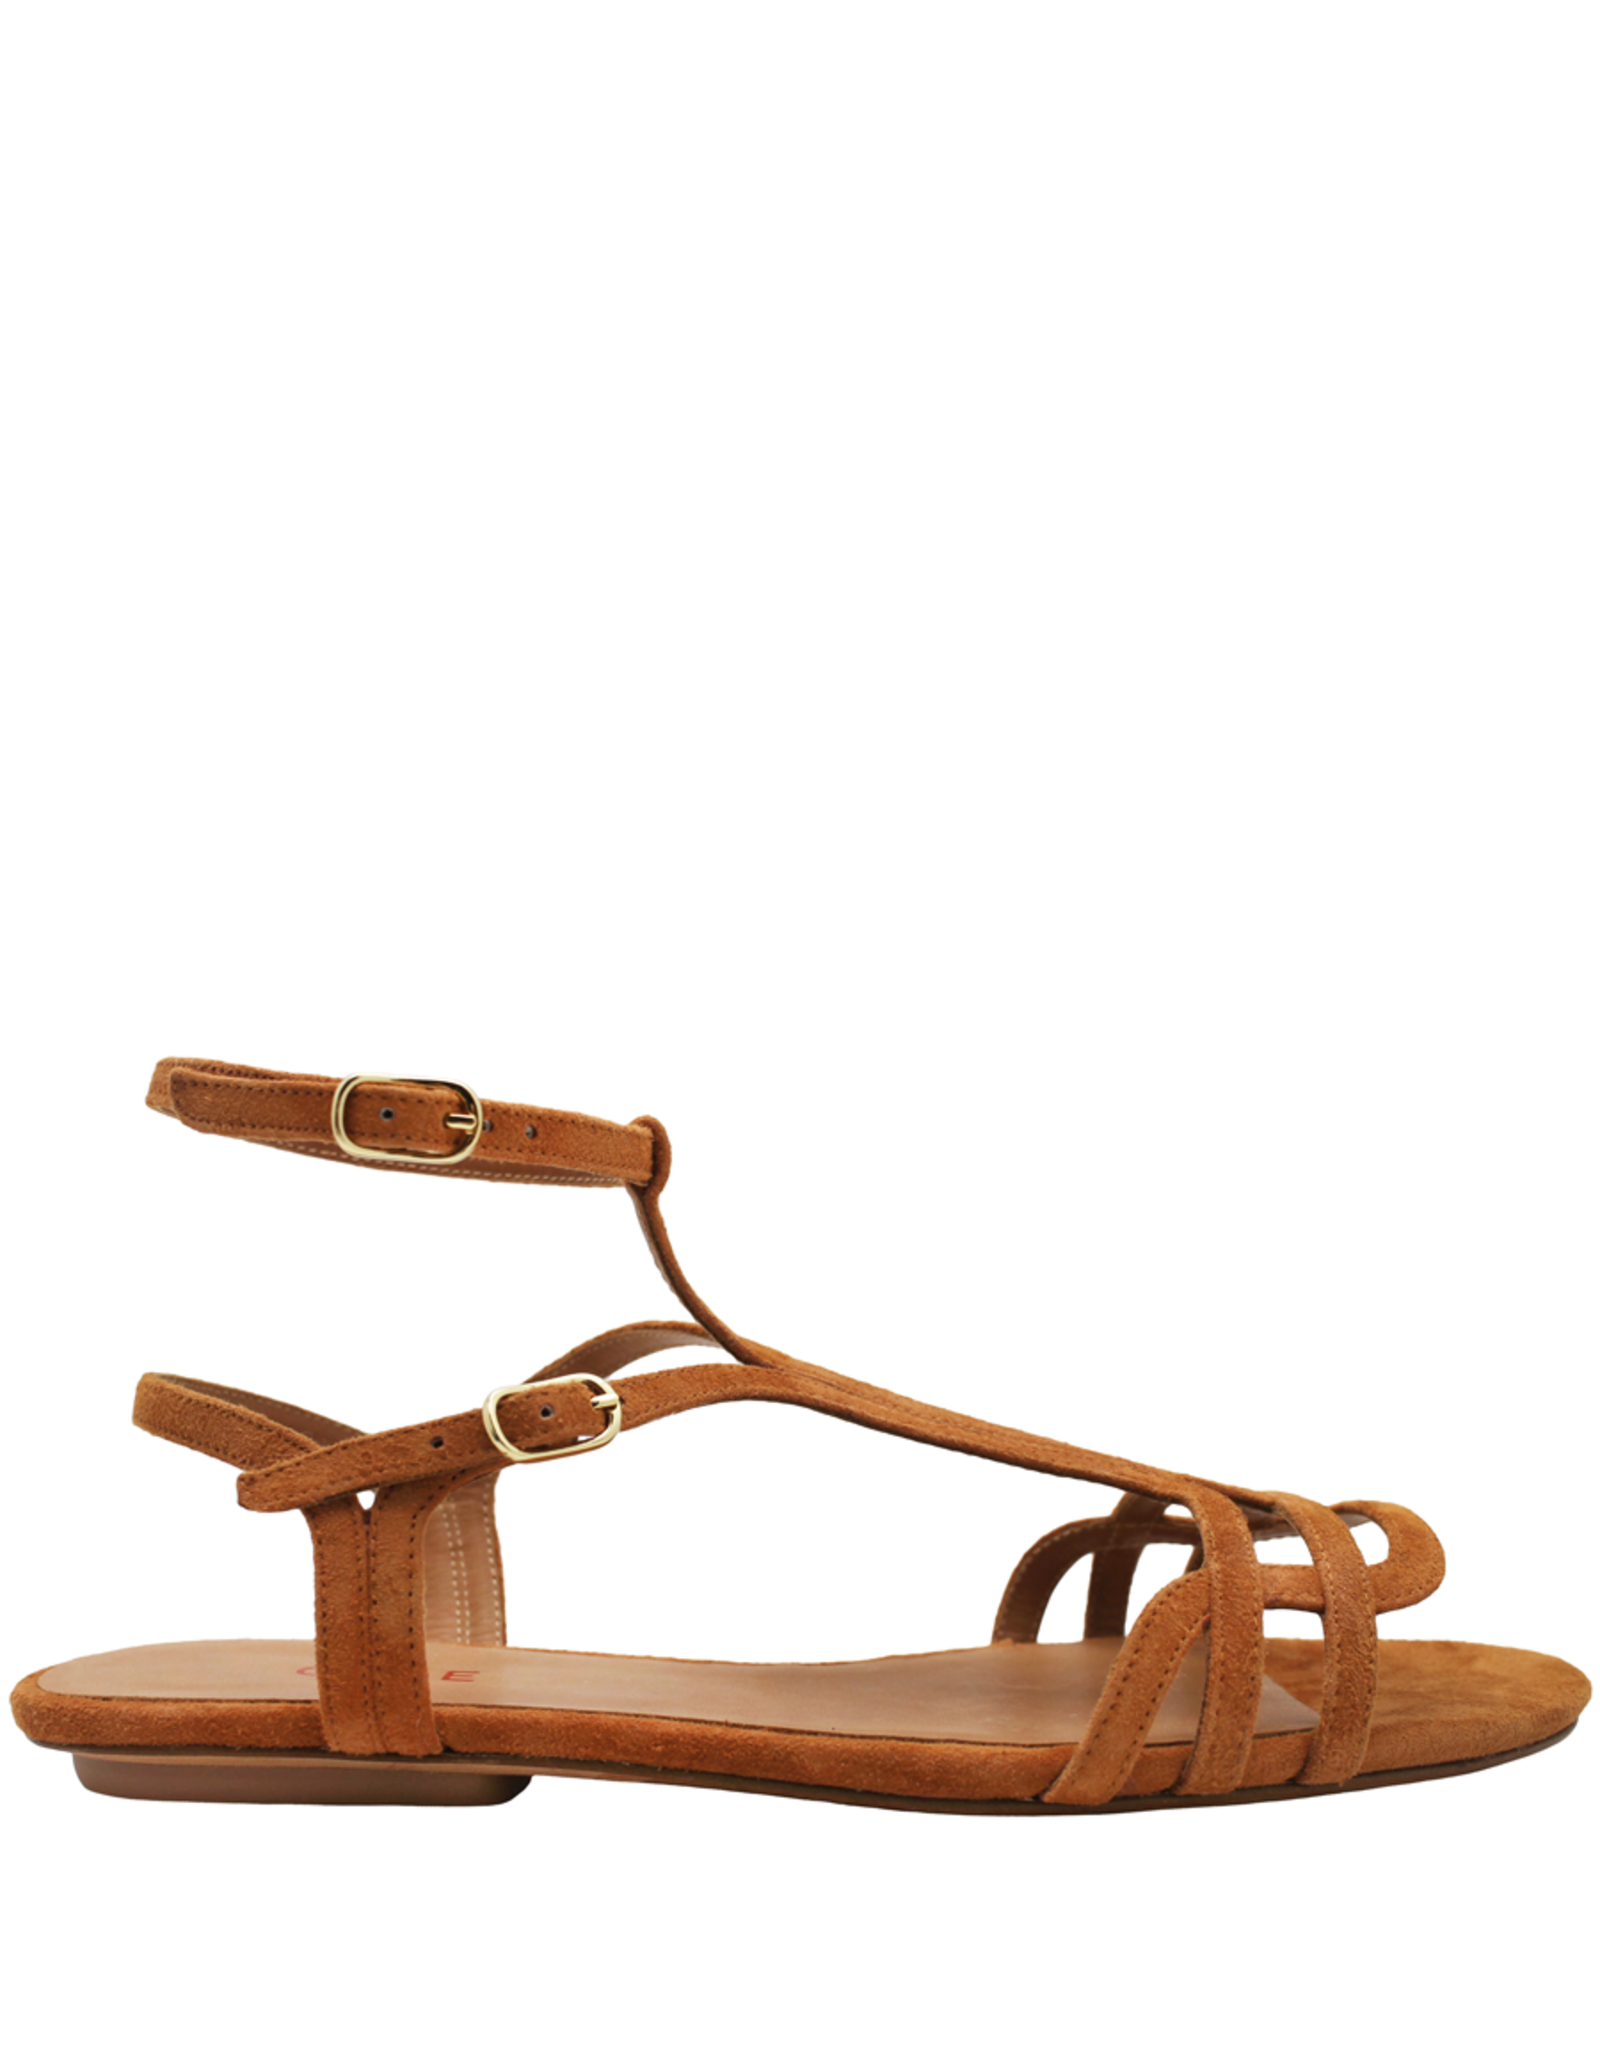 ChieMihara ChieMihara Curry Suede Double Buckle Art Deco Sandal Yael